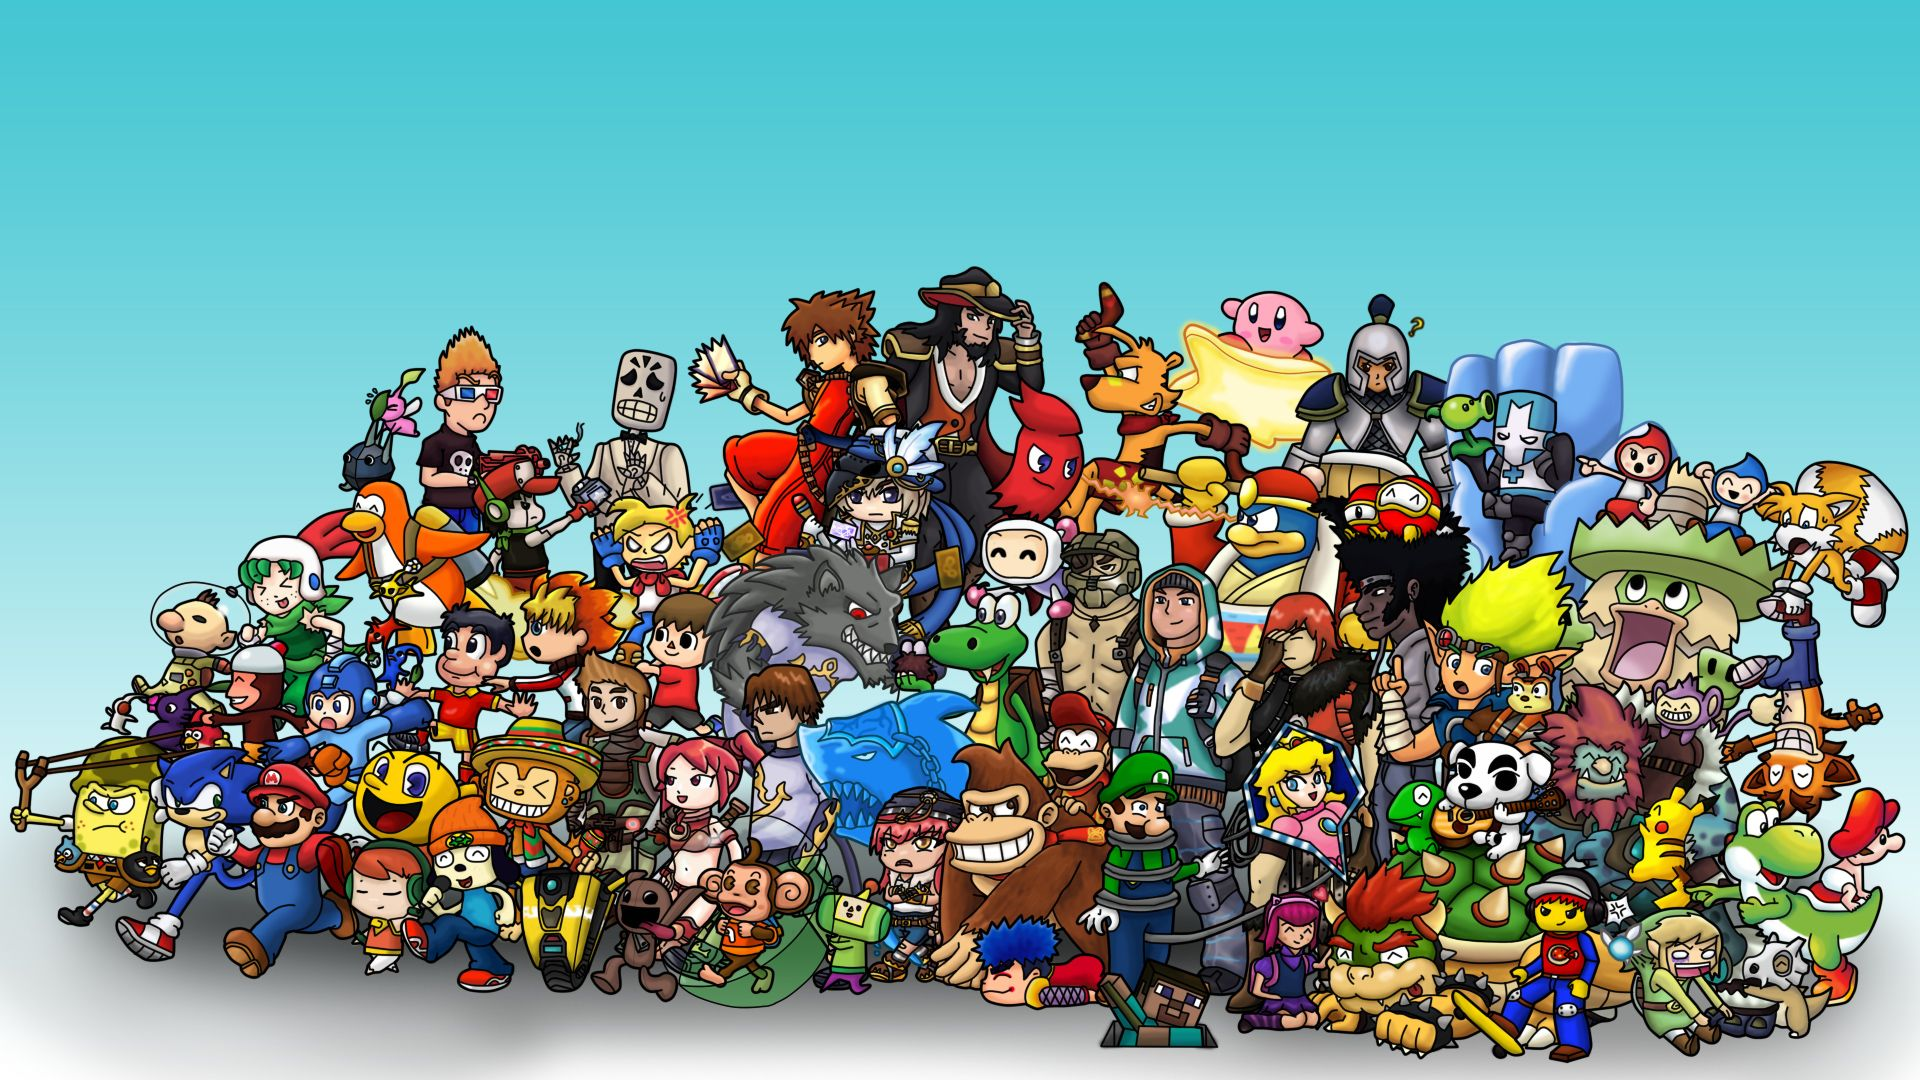 Pin By Favorites Wallpapers On Arcade Asylum Video Game Backgrounds Gaming Wallpapers Game Background